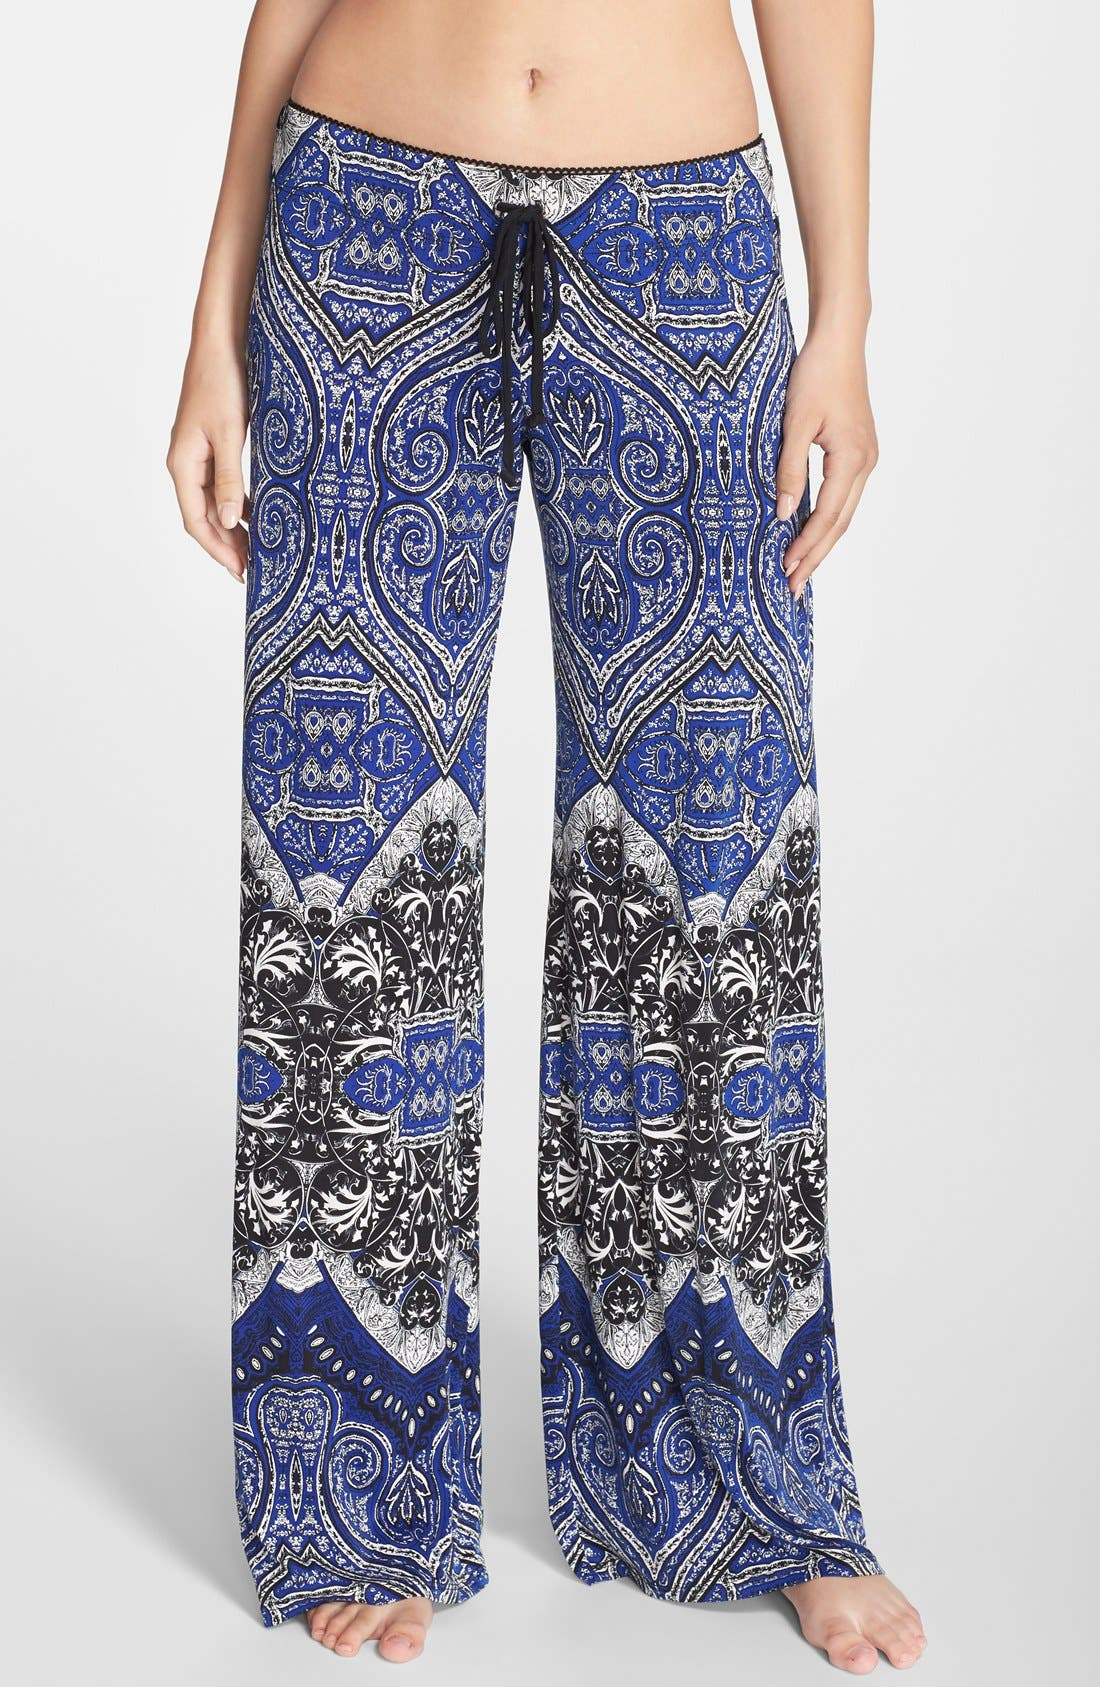 Alternate Image 1 Selected - In Bloom by Jonquil Tapestry Print Lounge Pants